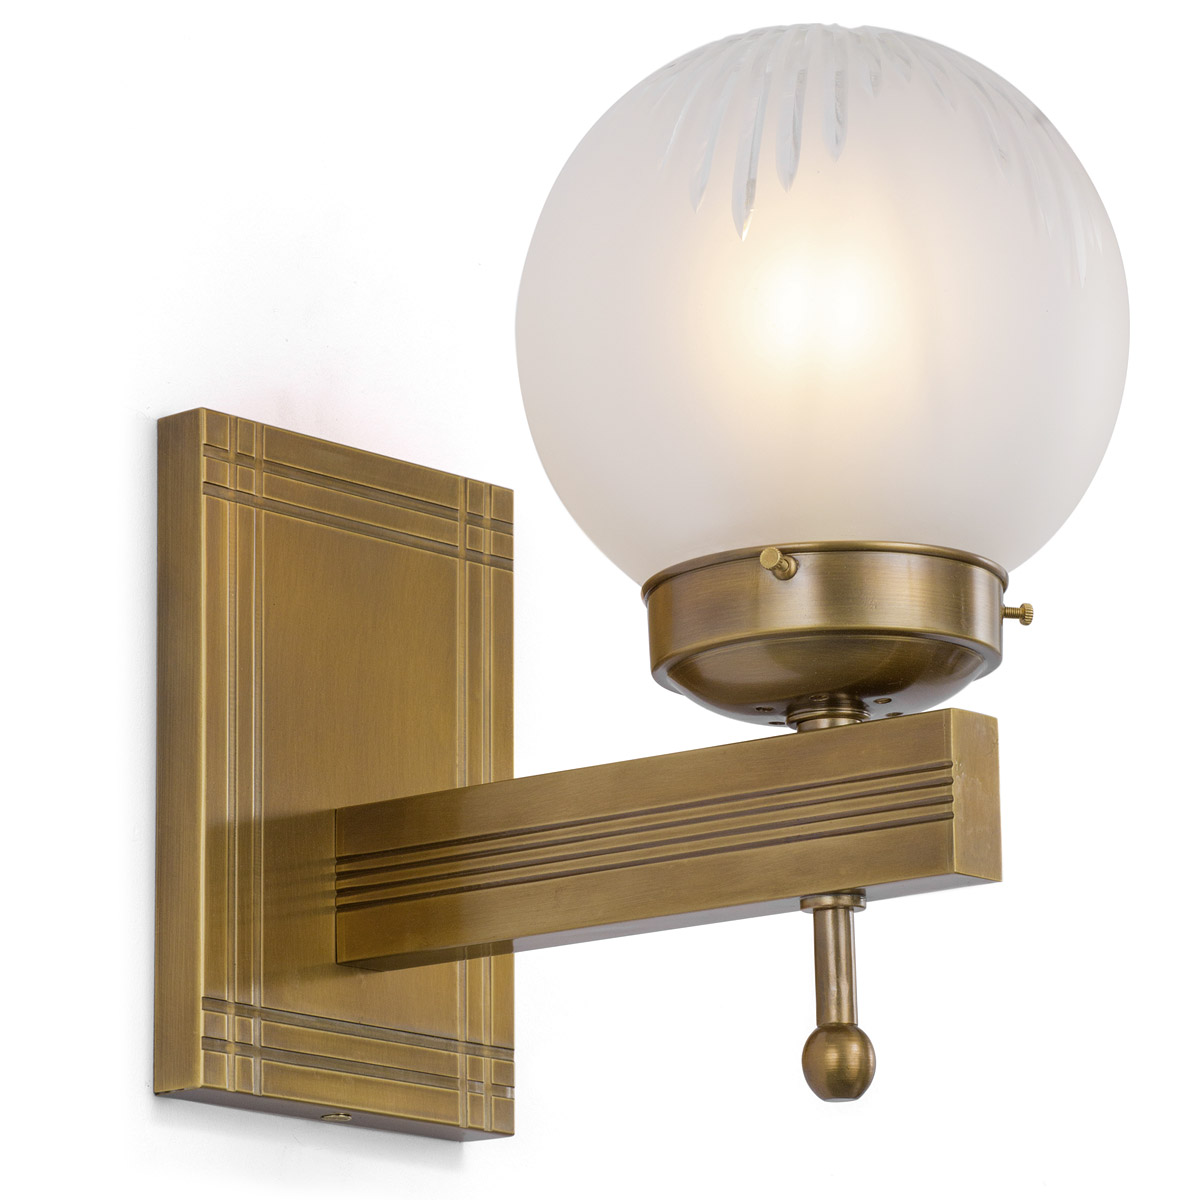 Image 1 art déco wall lamp with ball glass new york ii antique patina old brass